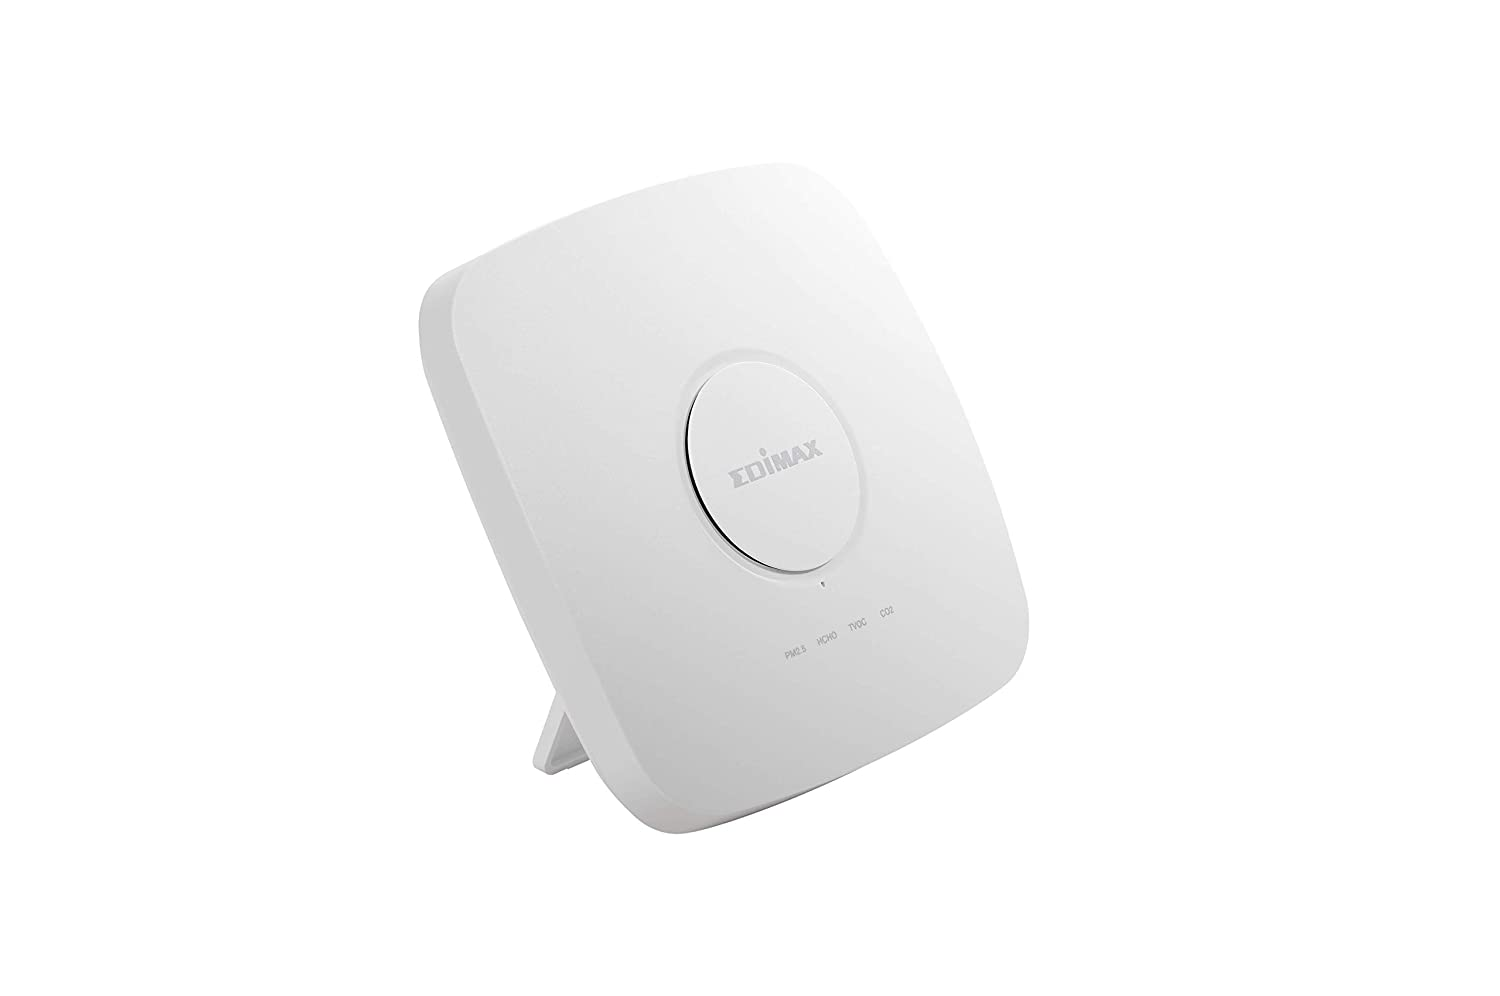 Edimax AI-2002W CO2 Temperature and Humidity Sensors TVOC HCHO PM10 Airbox : 7-in-1 Multi-Sensor Indoor Air Quality Detector with PM2.5